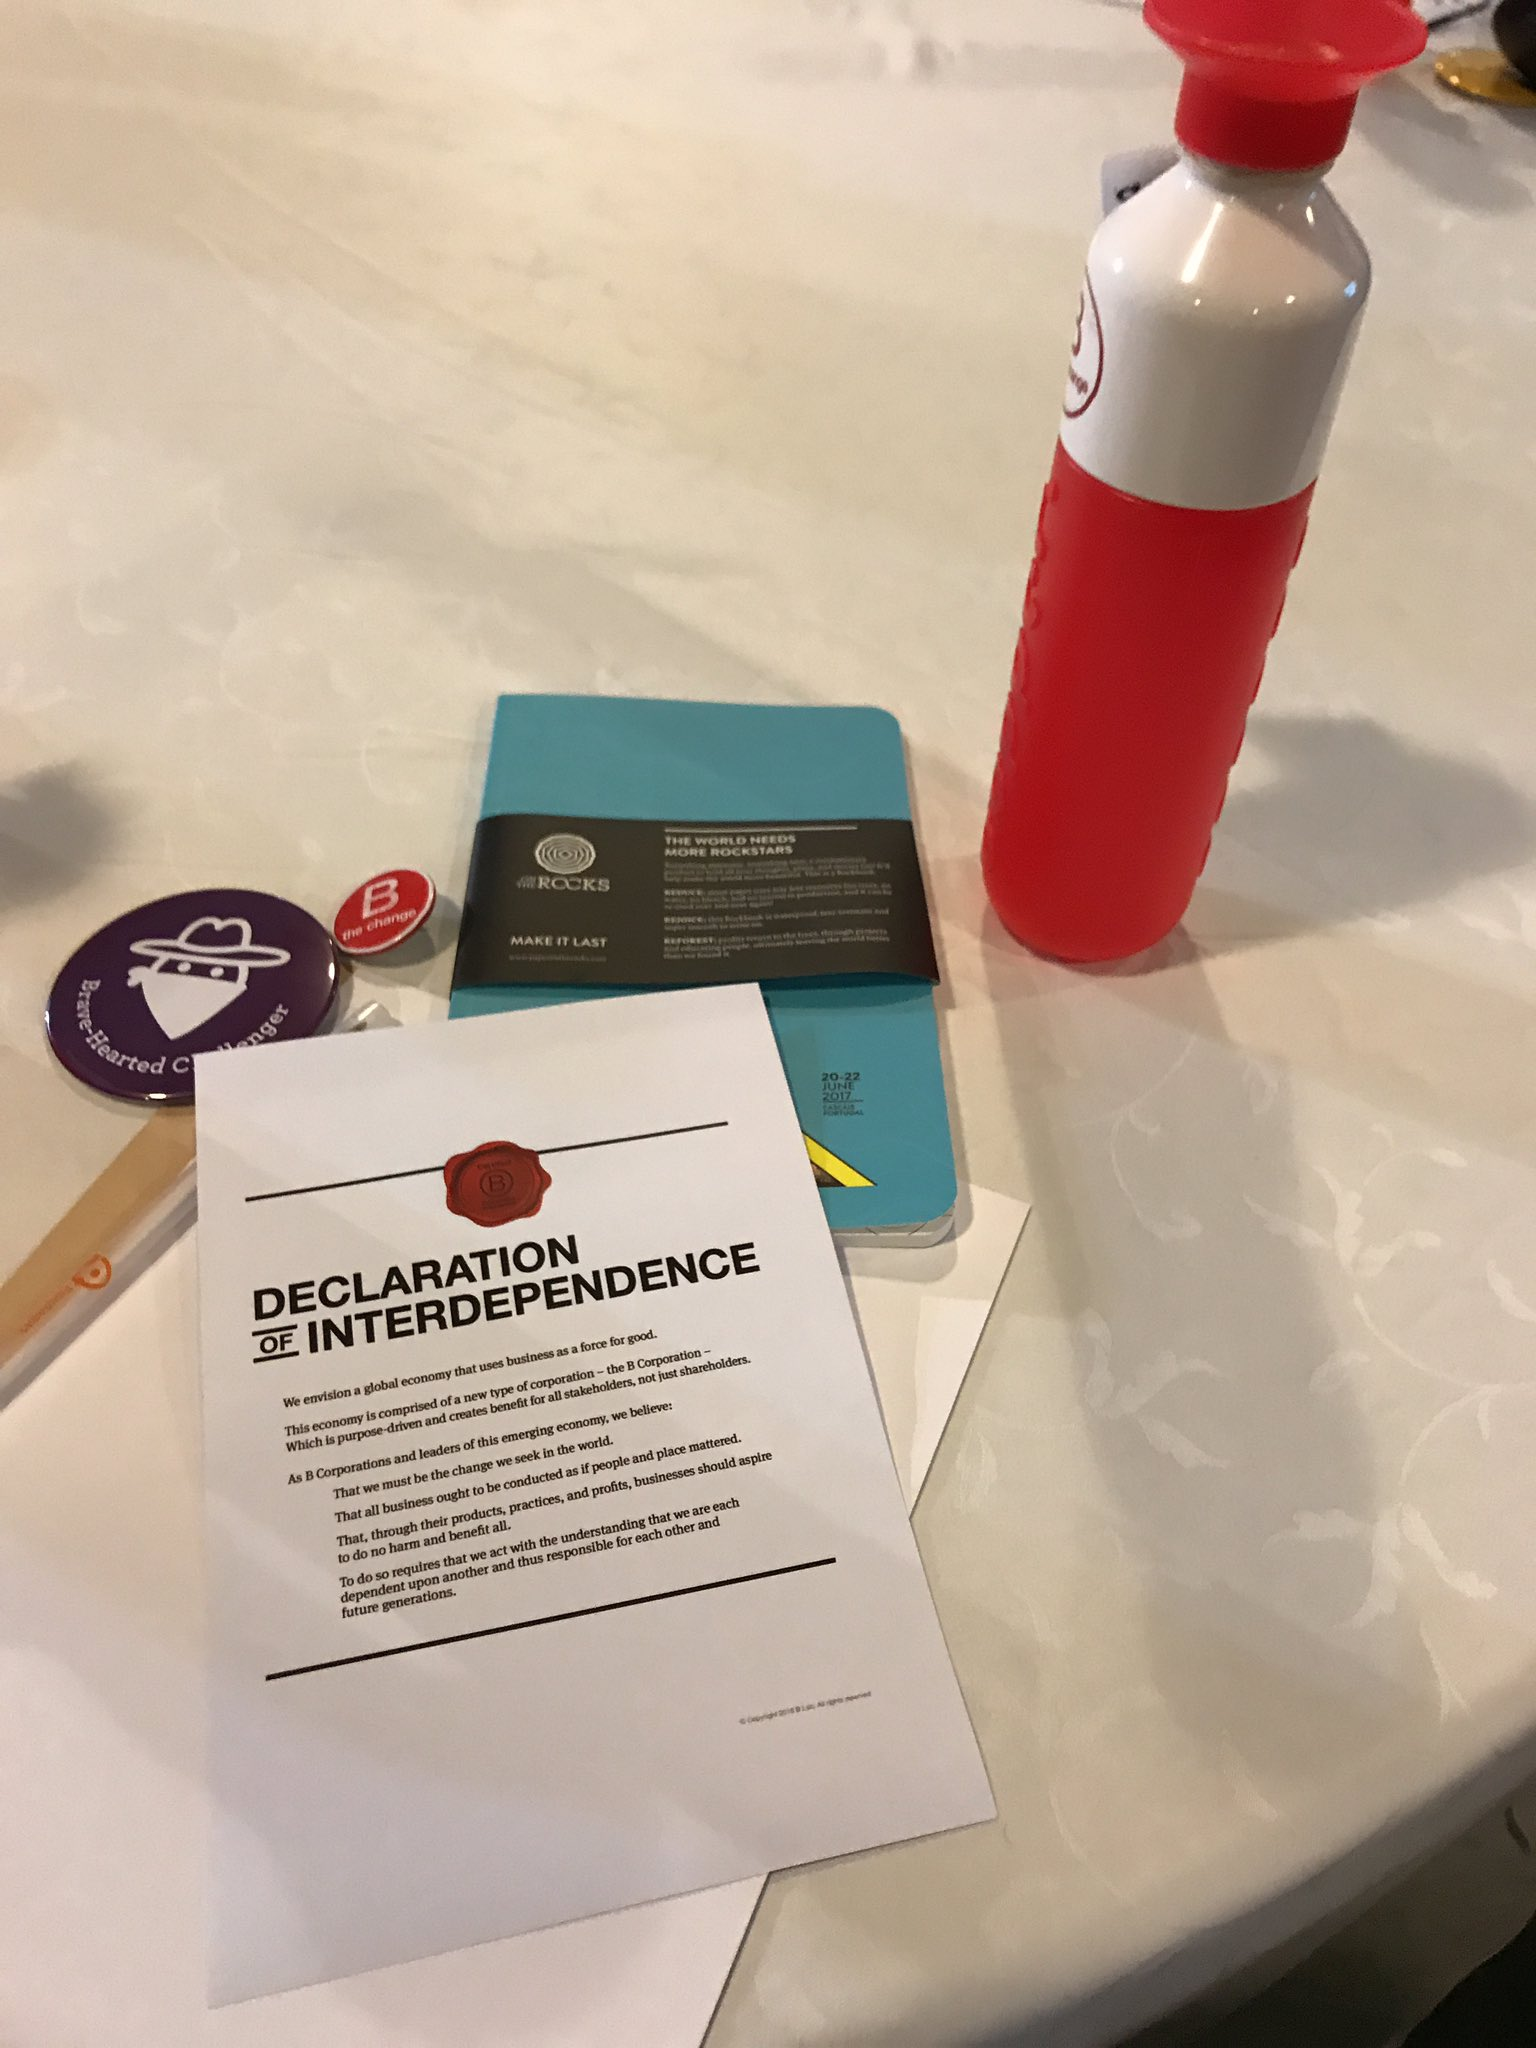 My working kit for the next coming days 😊. @BCorpEurope #BCorpSummit #bethechange https://t.co/tornpaNXxO